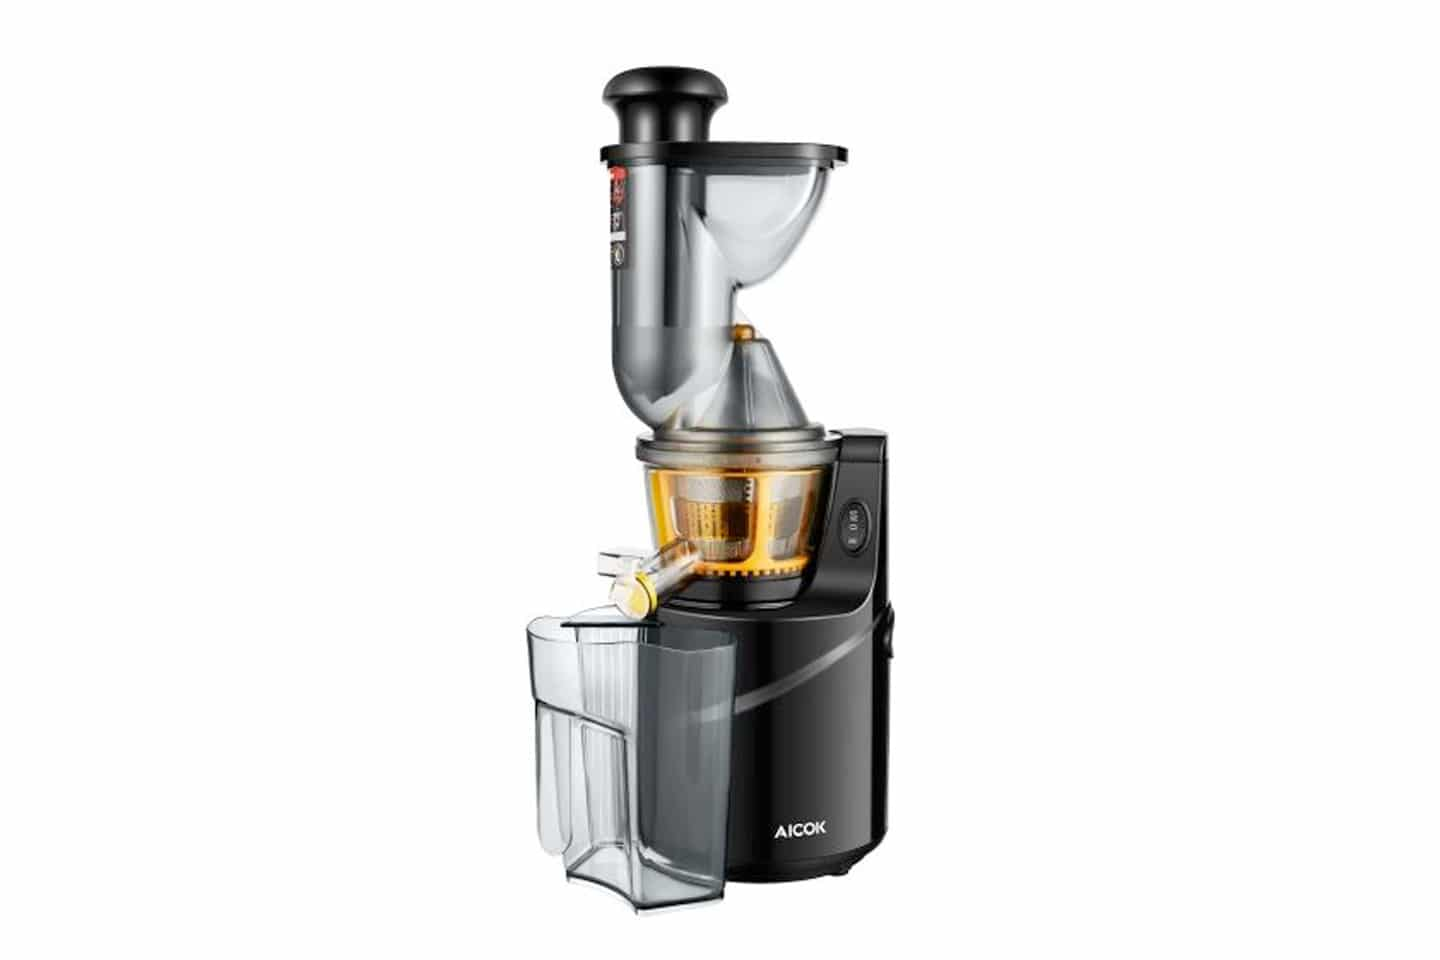 Aicok Sd60k Wide Mouth Vertical Slow Juicer Review